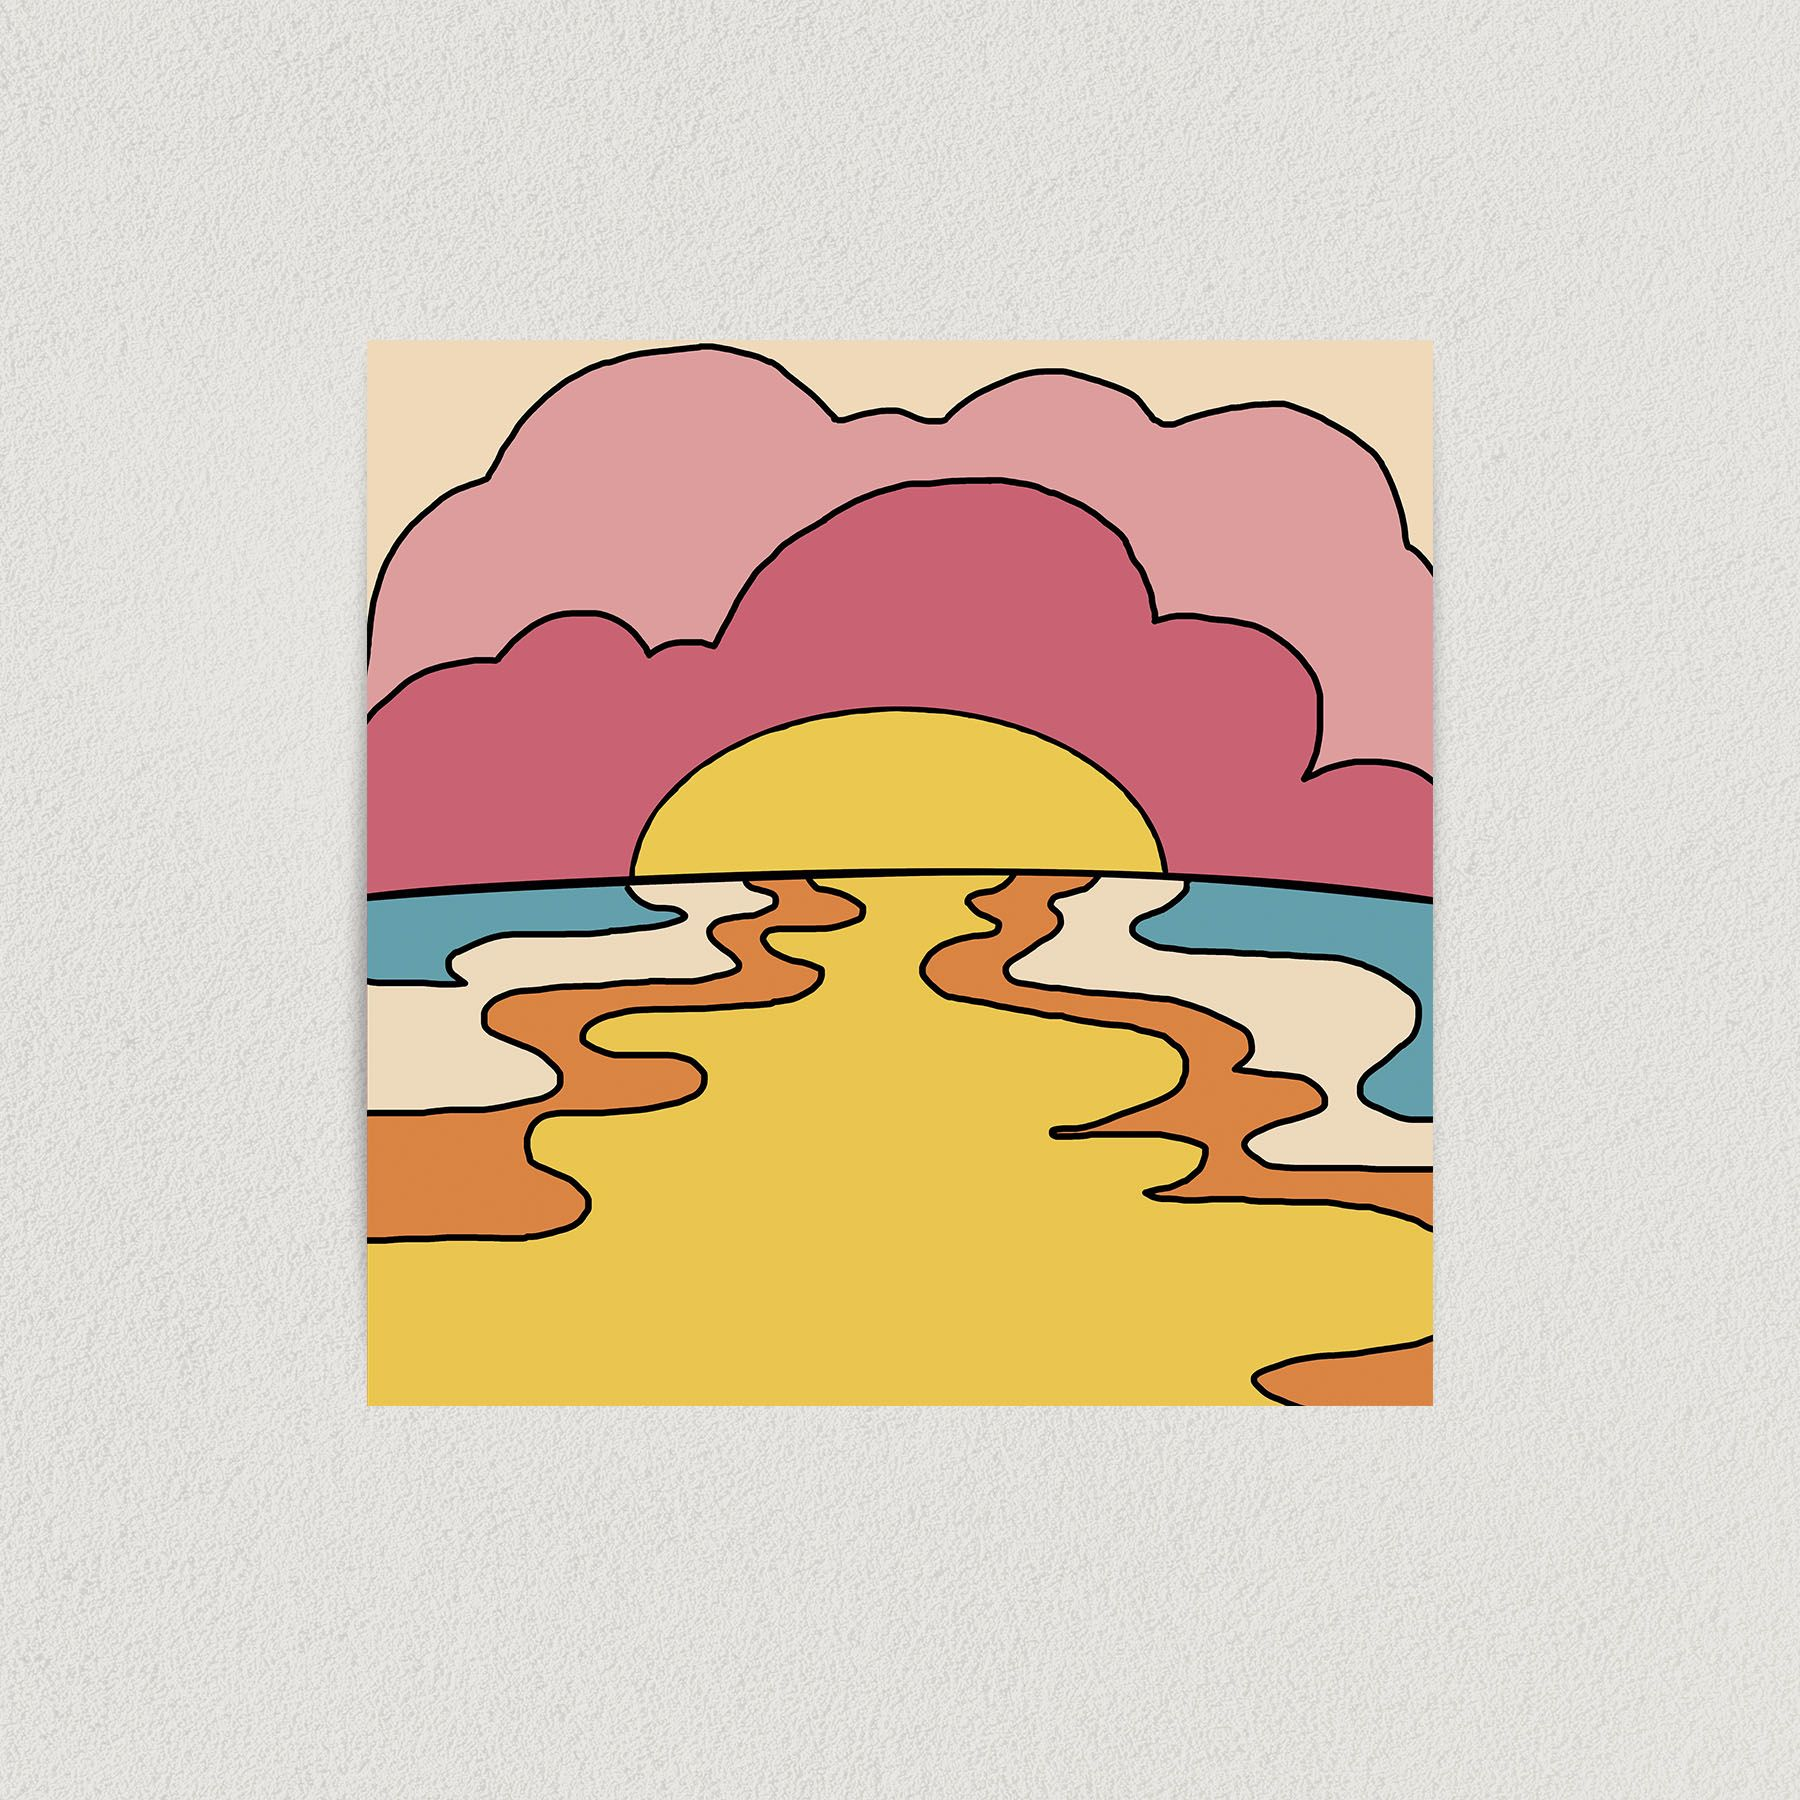 Dreaming Of Colorful Sunsets Art Print Poster 12″ x 12″ Wall Art AL1002